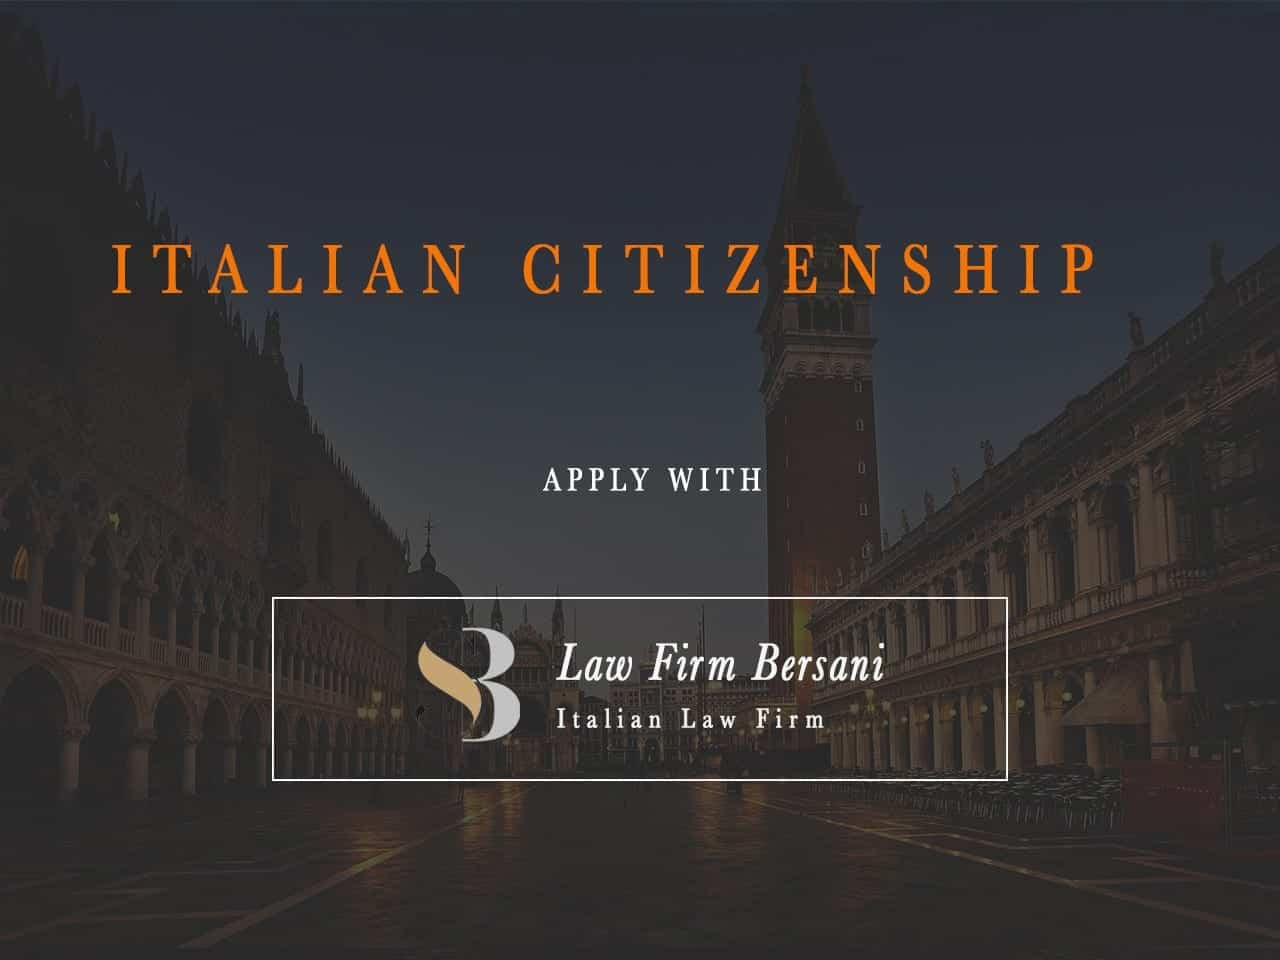 italian-dual-citizenship-speed-up-italian-citizenship-processing-time-boost-italian-citizenship-time-italian-citizenship-by-descent-jure-sanguinisi-time